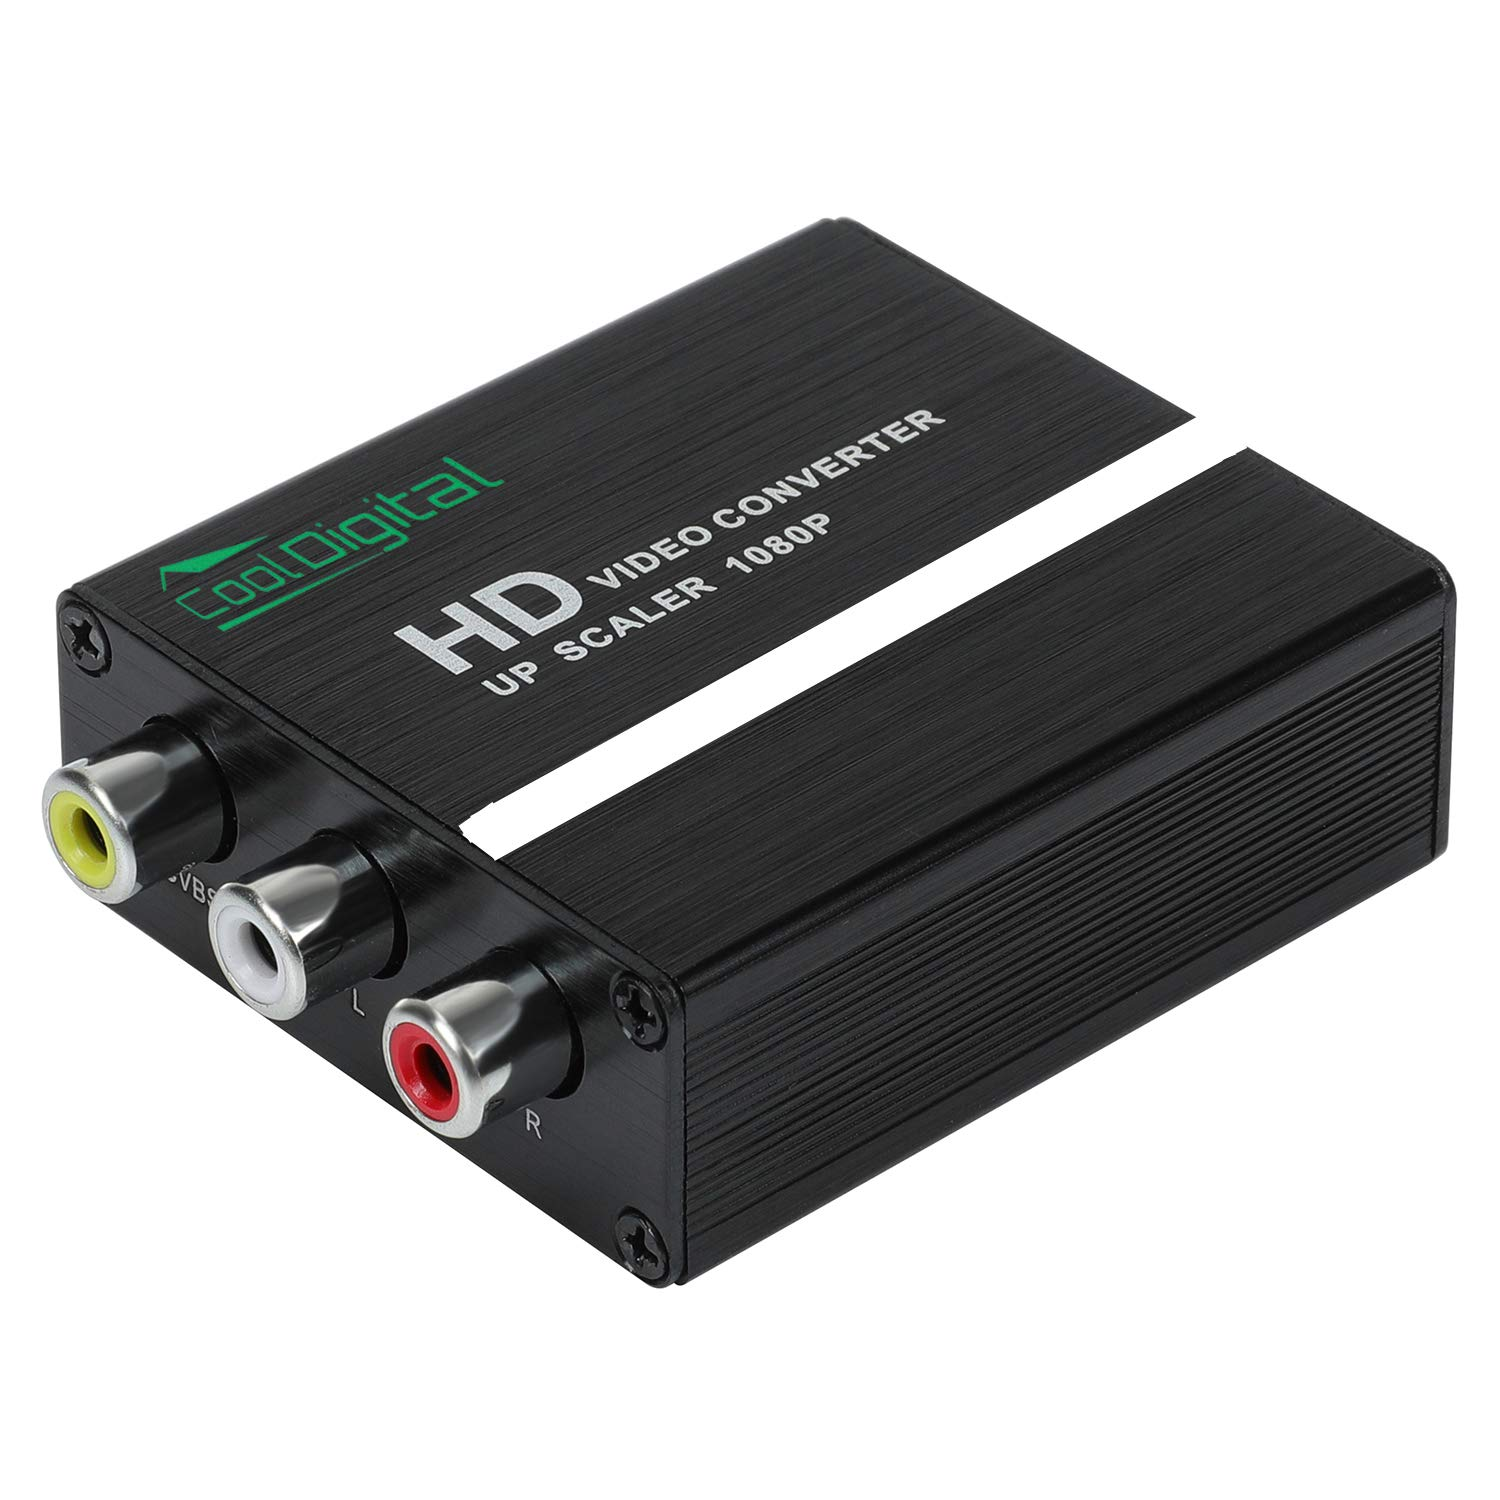 AUTOUTLET HDMI Splitter 1 in 4 Out,V1.4 Powered 1x4 Ports Box Supports 3D Full Ultra HD 1080P 4K//2K and Compatible with PC STB PS3 Roku Blu-Ray Player HDTV